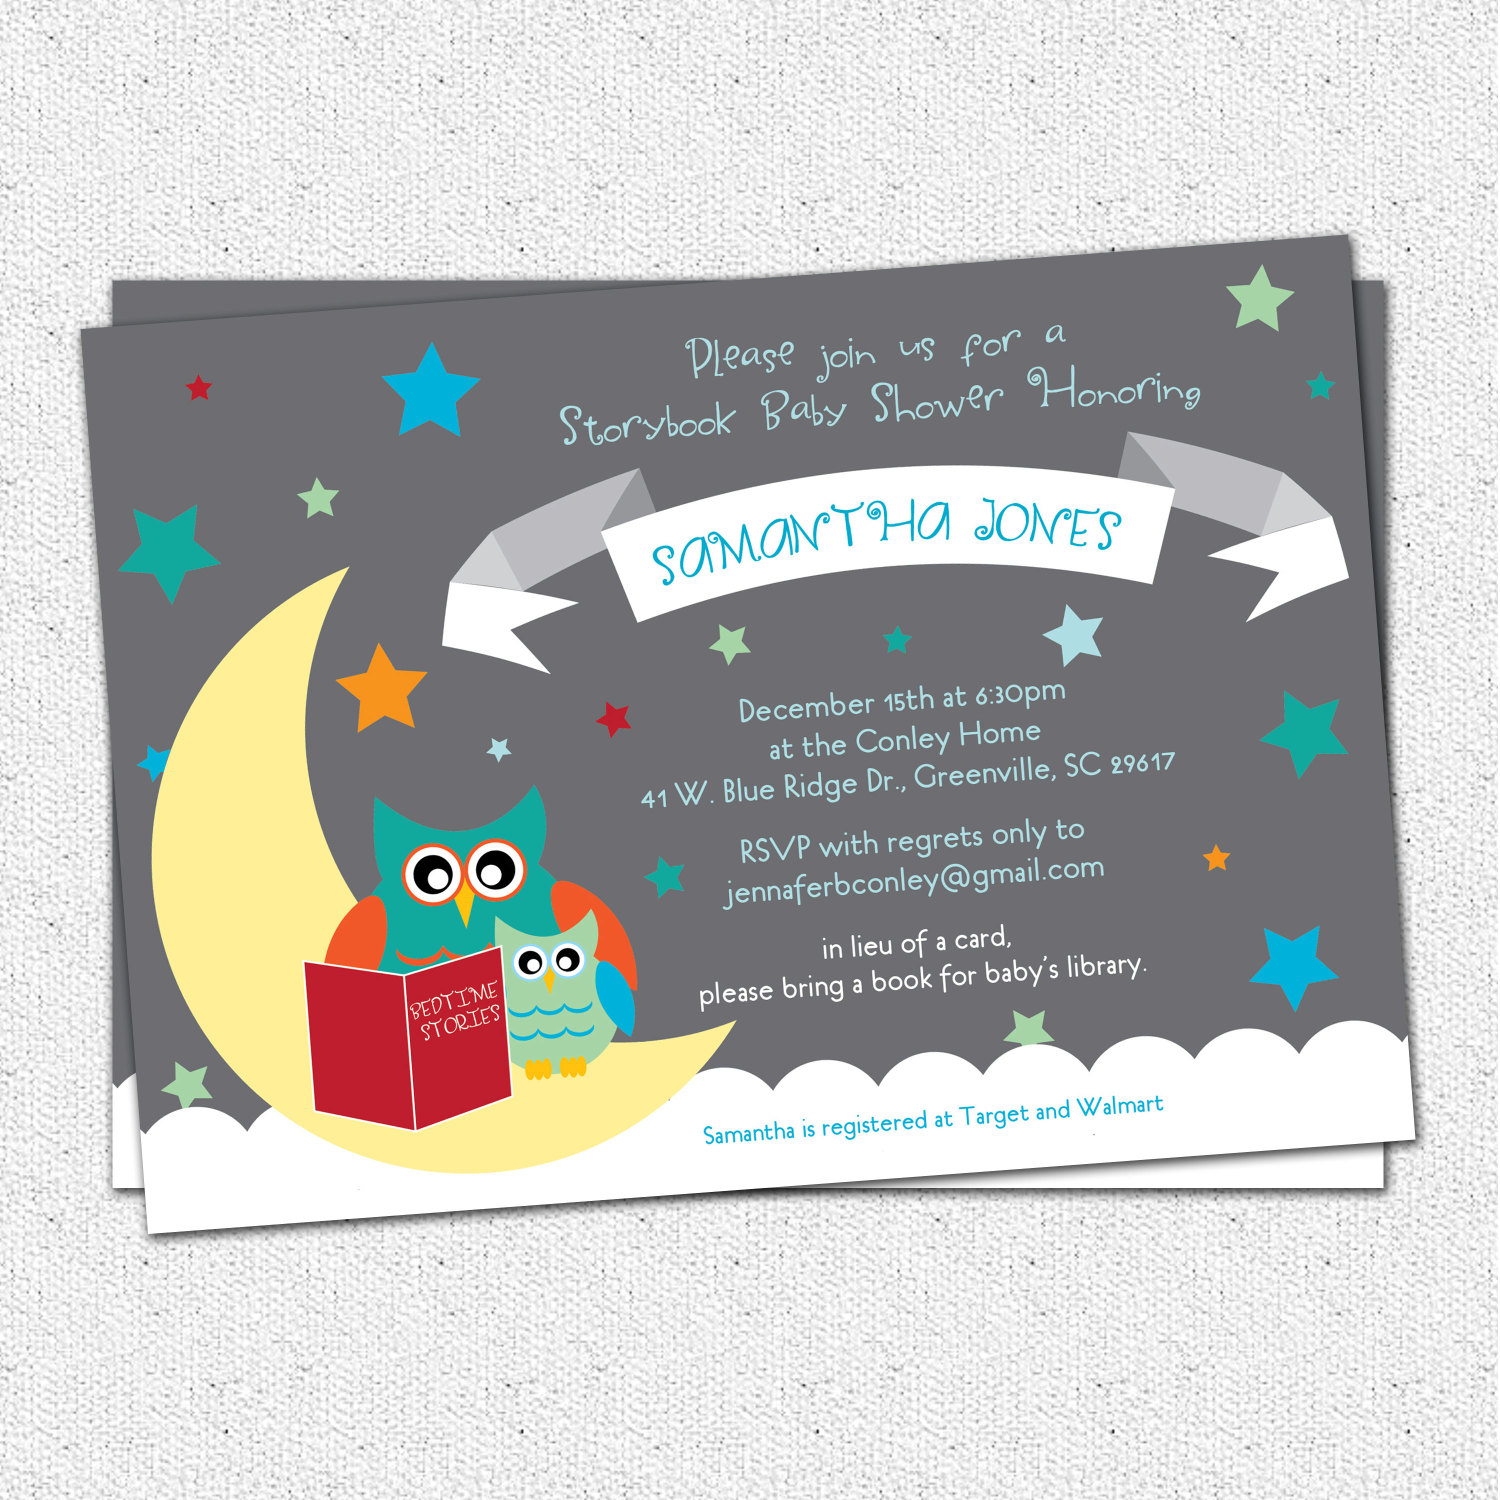 Baby shower invitations story book themed mom and baby owl moon baby shower invitations story book themed mom and baby owl moon and stars filmwisefo Gallery